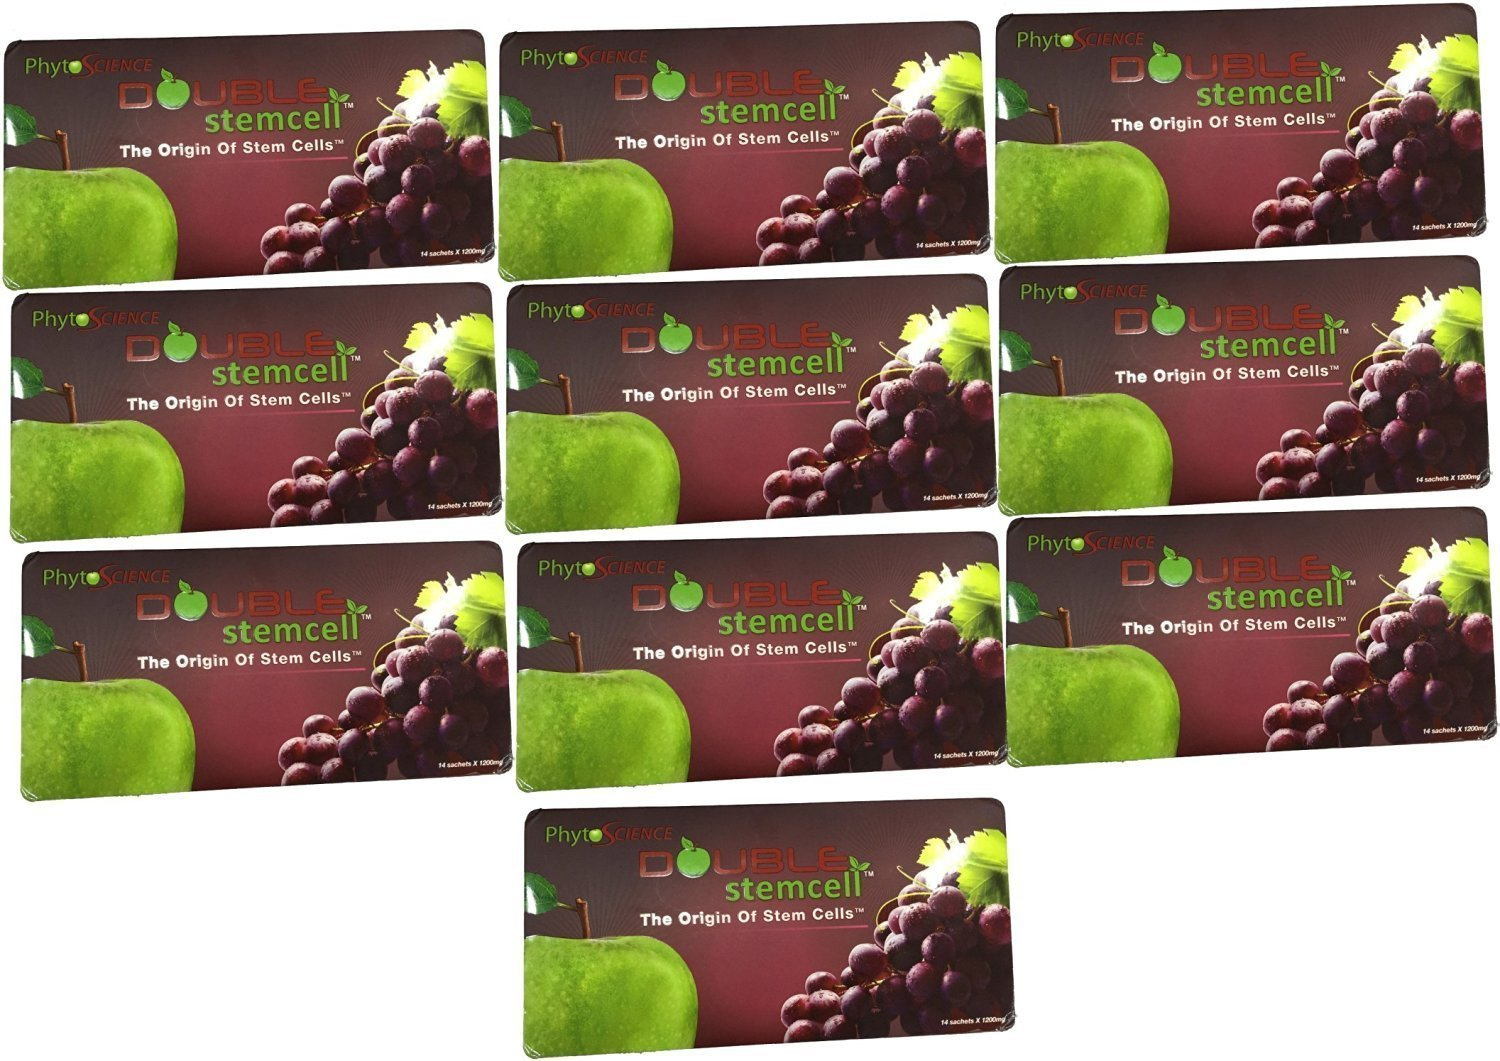 PhytoScience Double stemcell – 10 Pack (140 Sachets) – Beauty Innovations – Best Anti Aging Skin Care